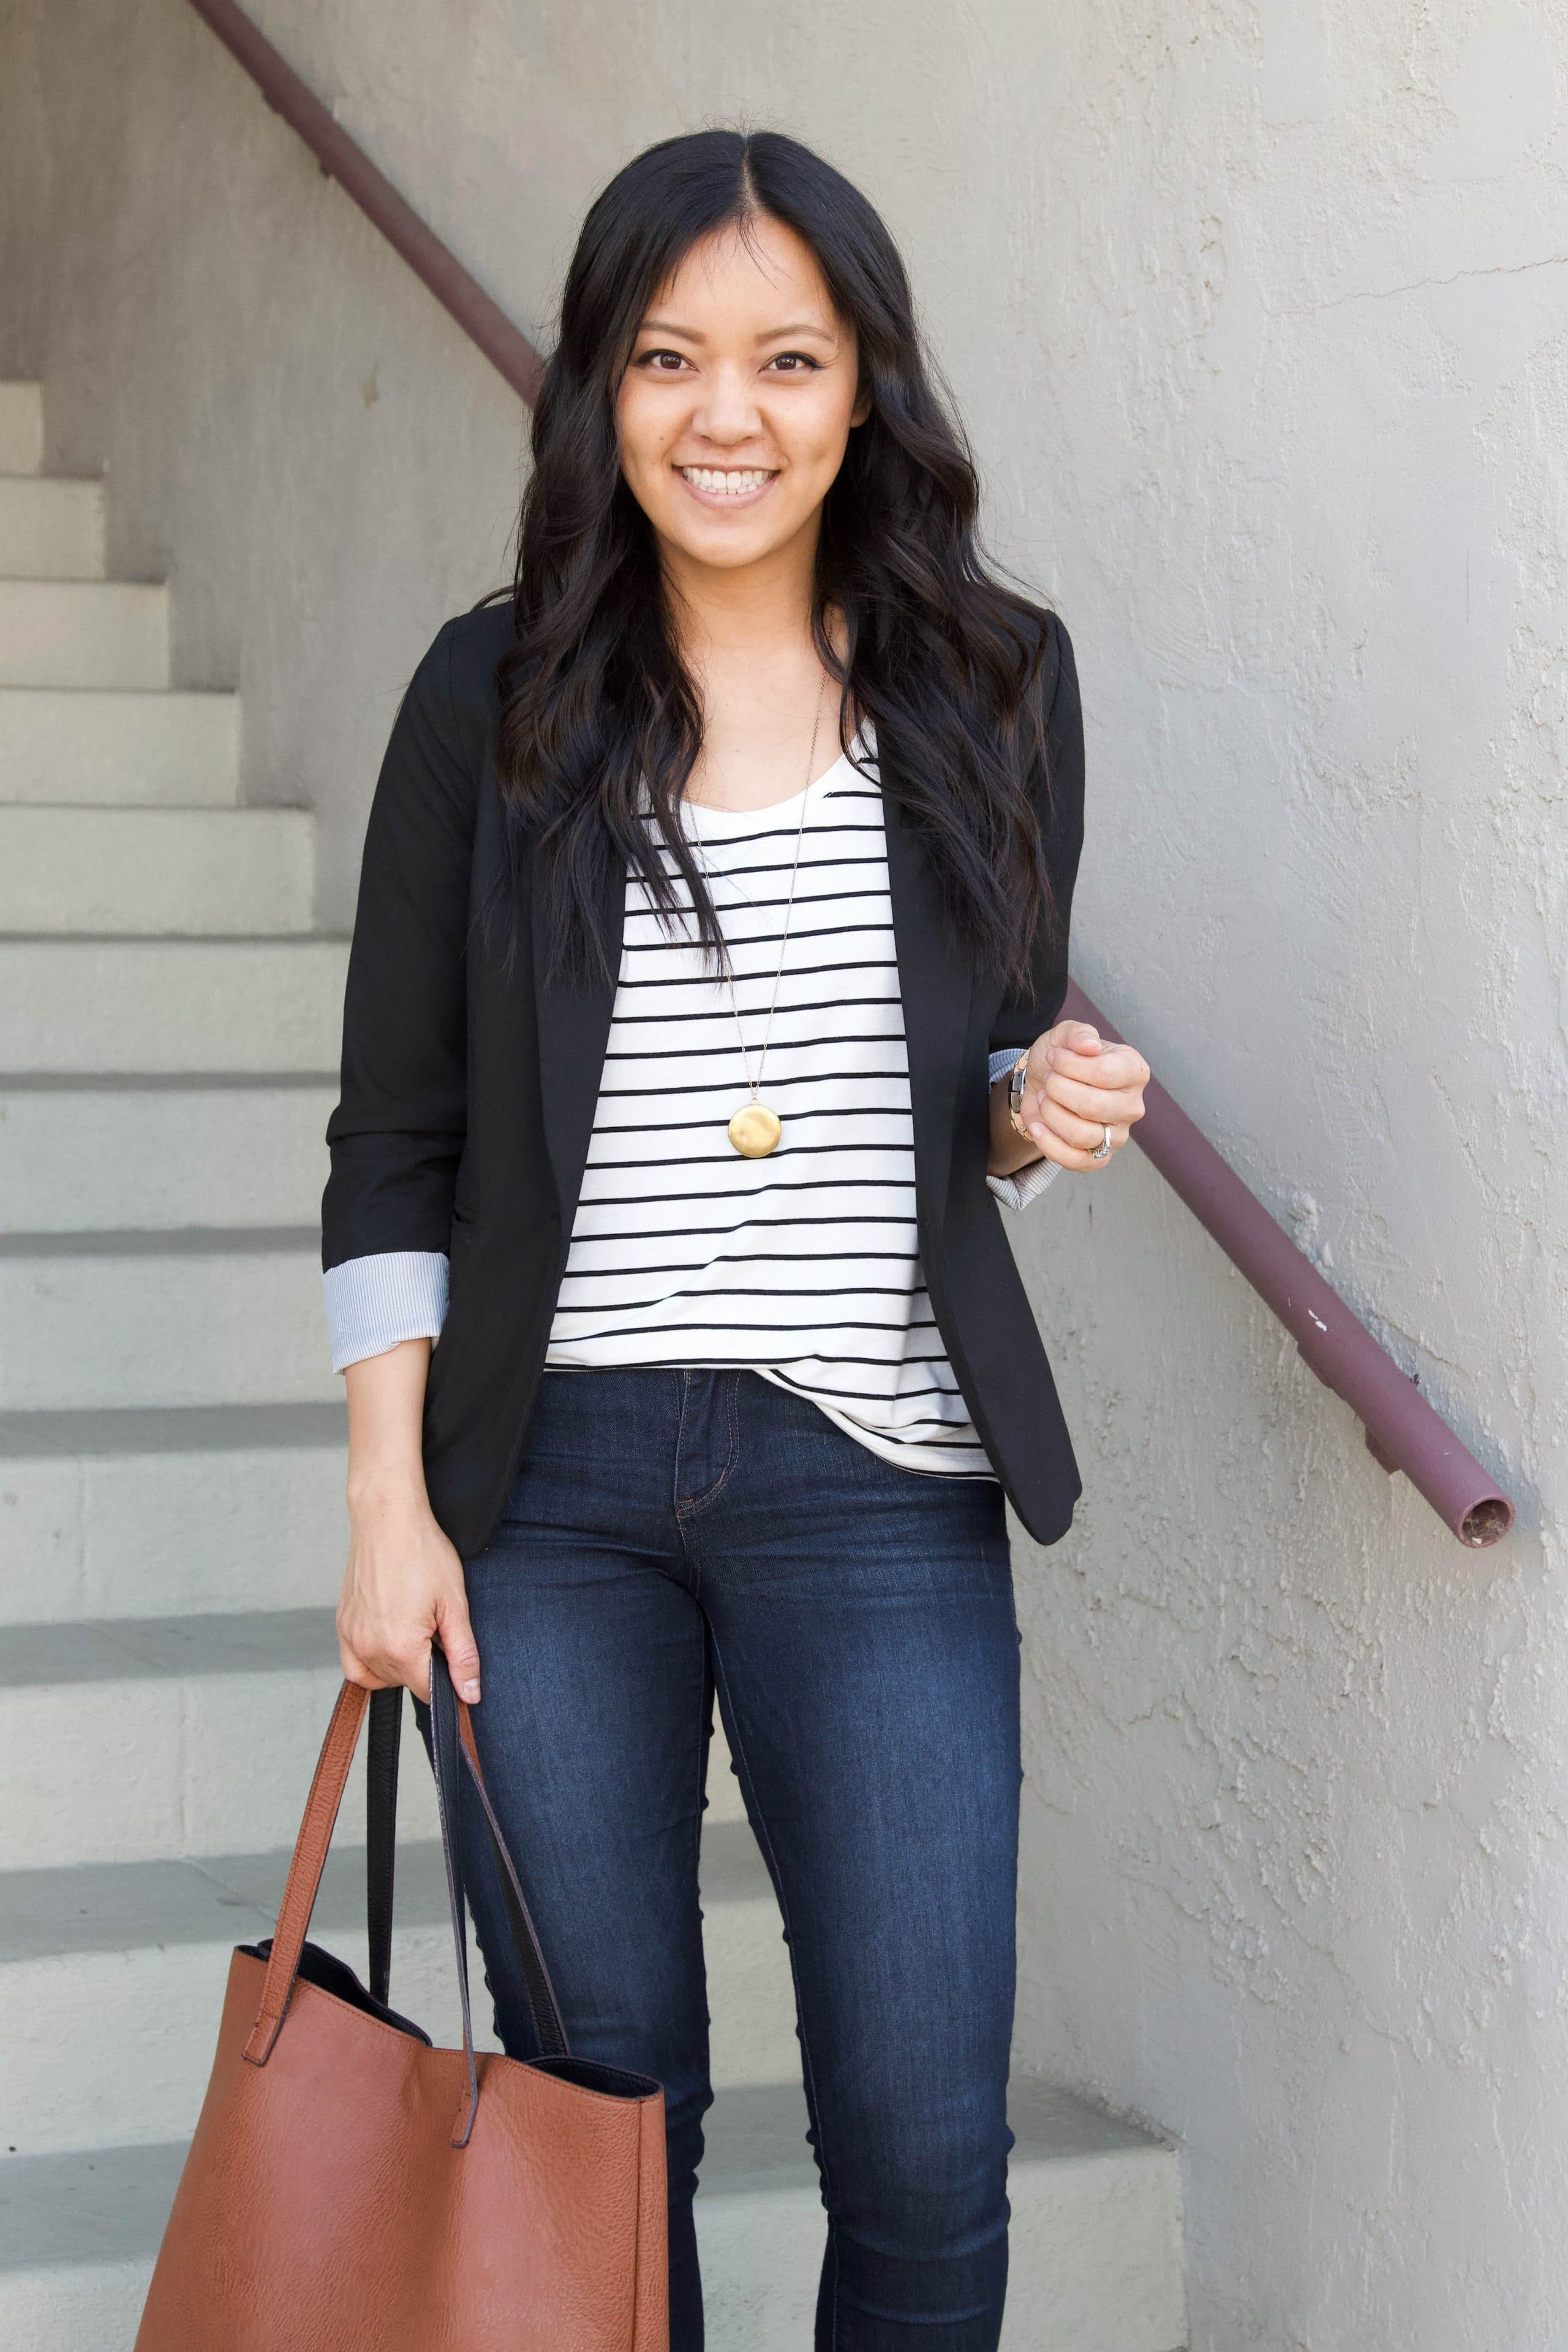 black twill blazer + pendant necklace + striped tee + skinny jeans